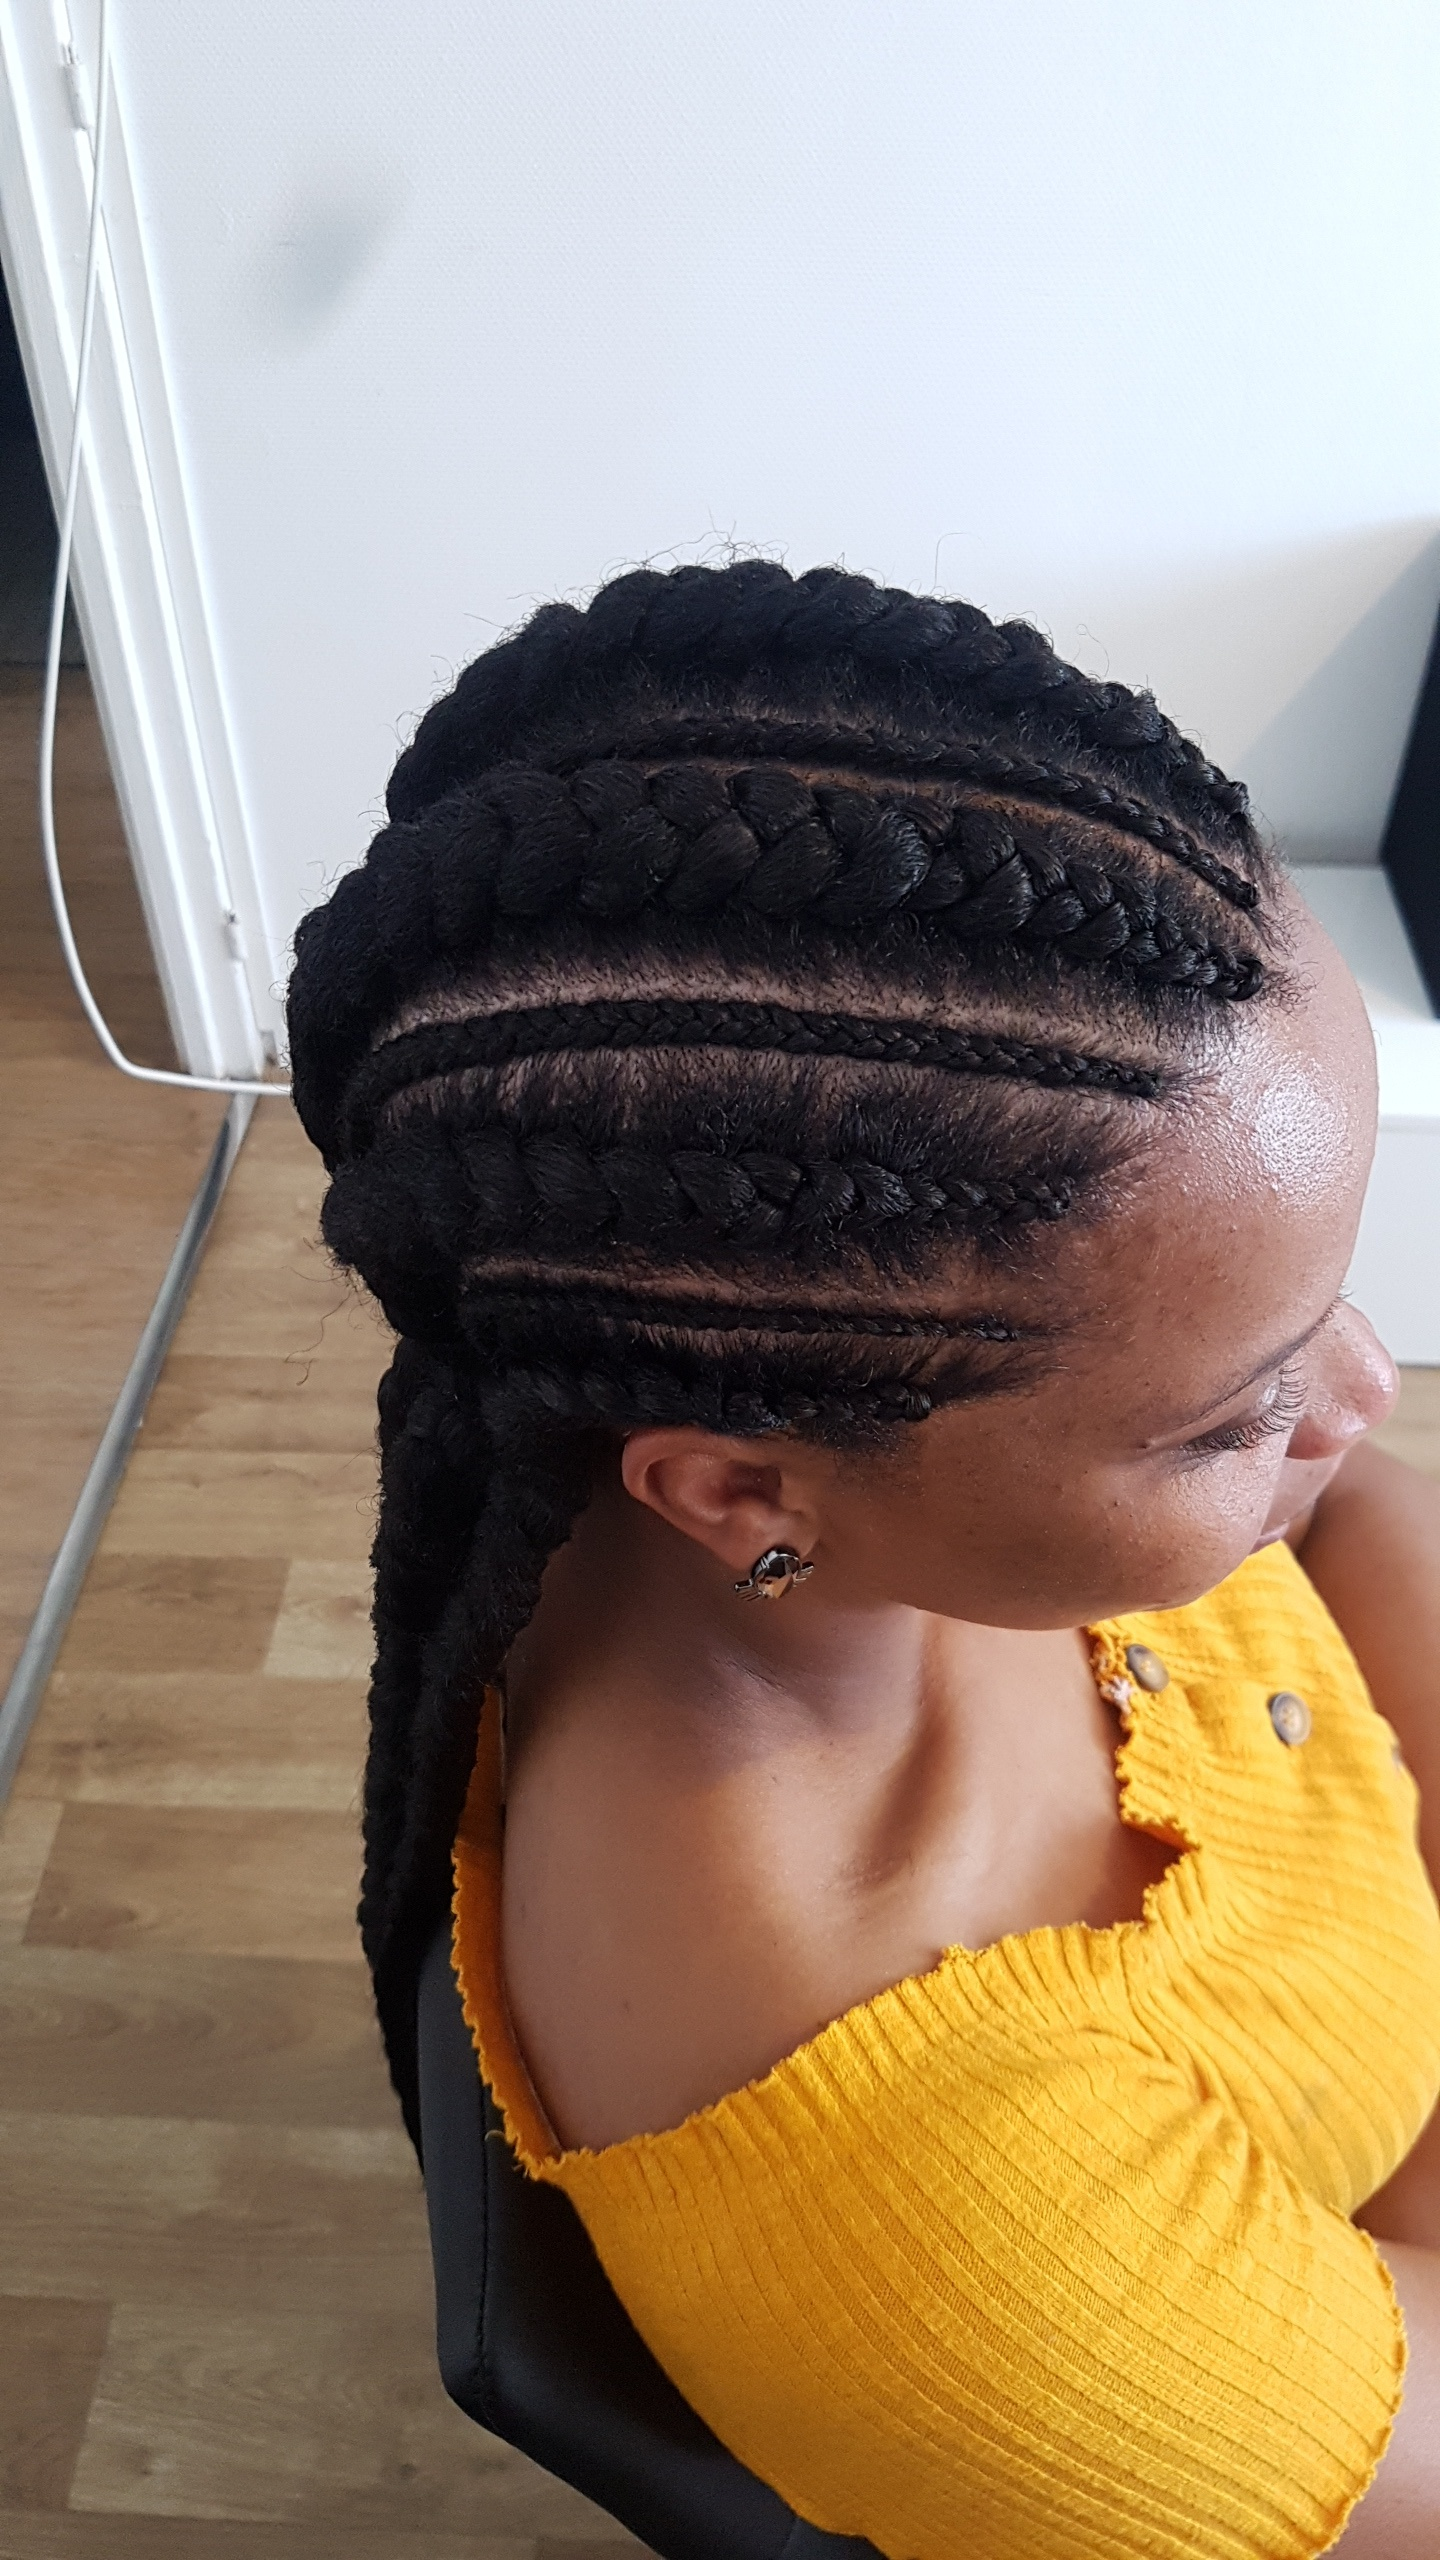 salon de coiffure afro tresse tresses box braids crochet braids vanilles tissages paris 75 77 78 91 92 93 94 95 NBXVUORI